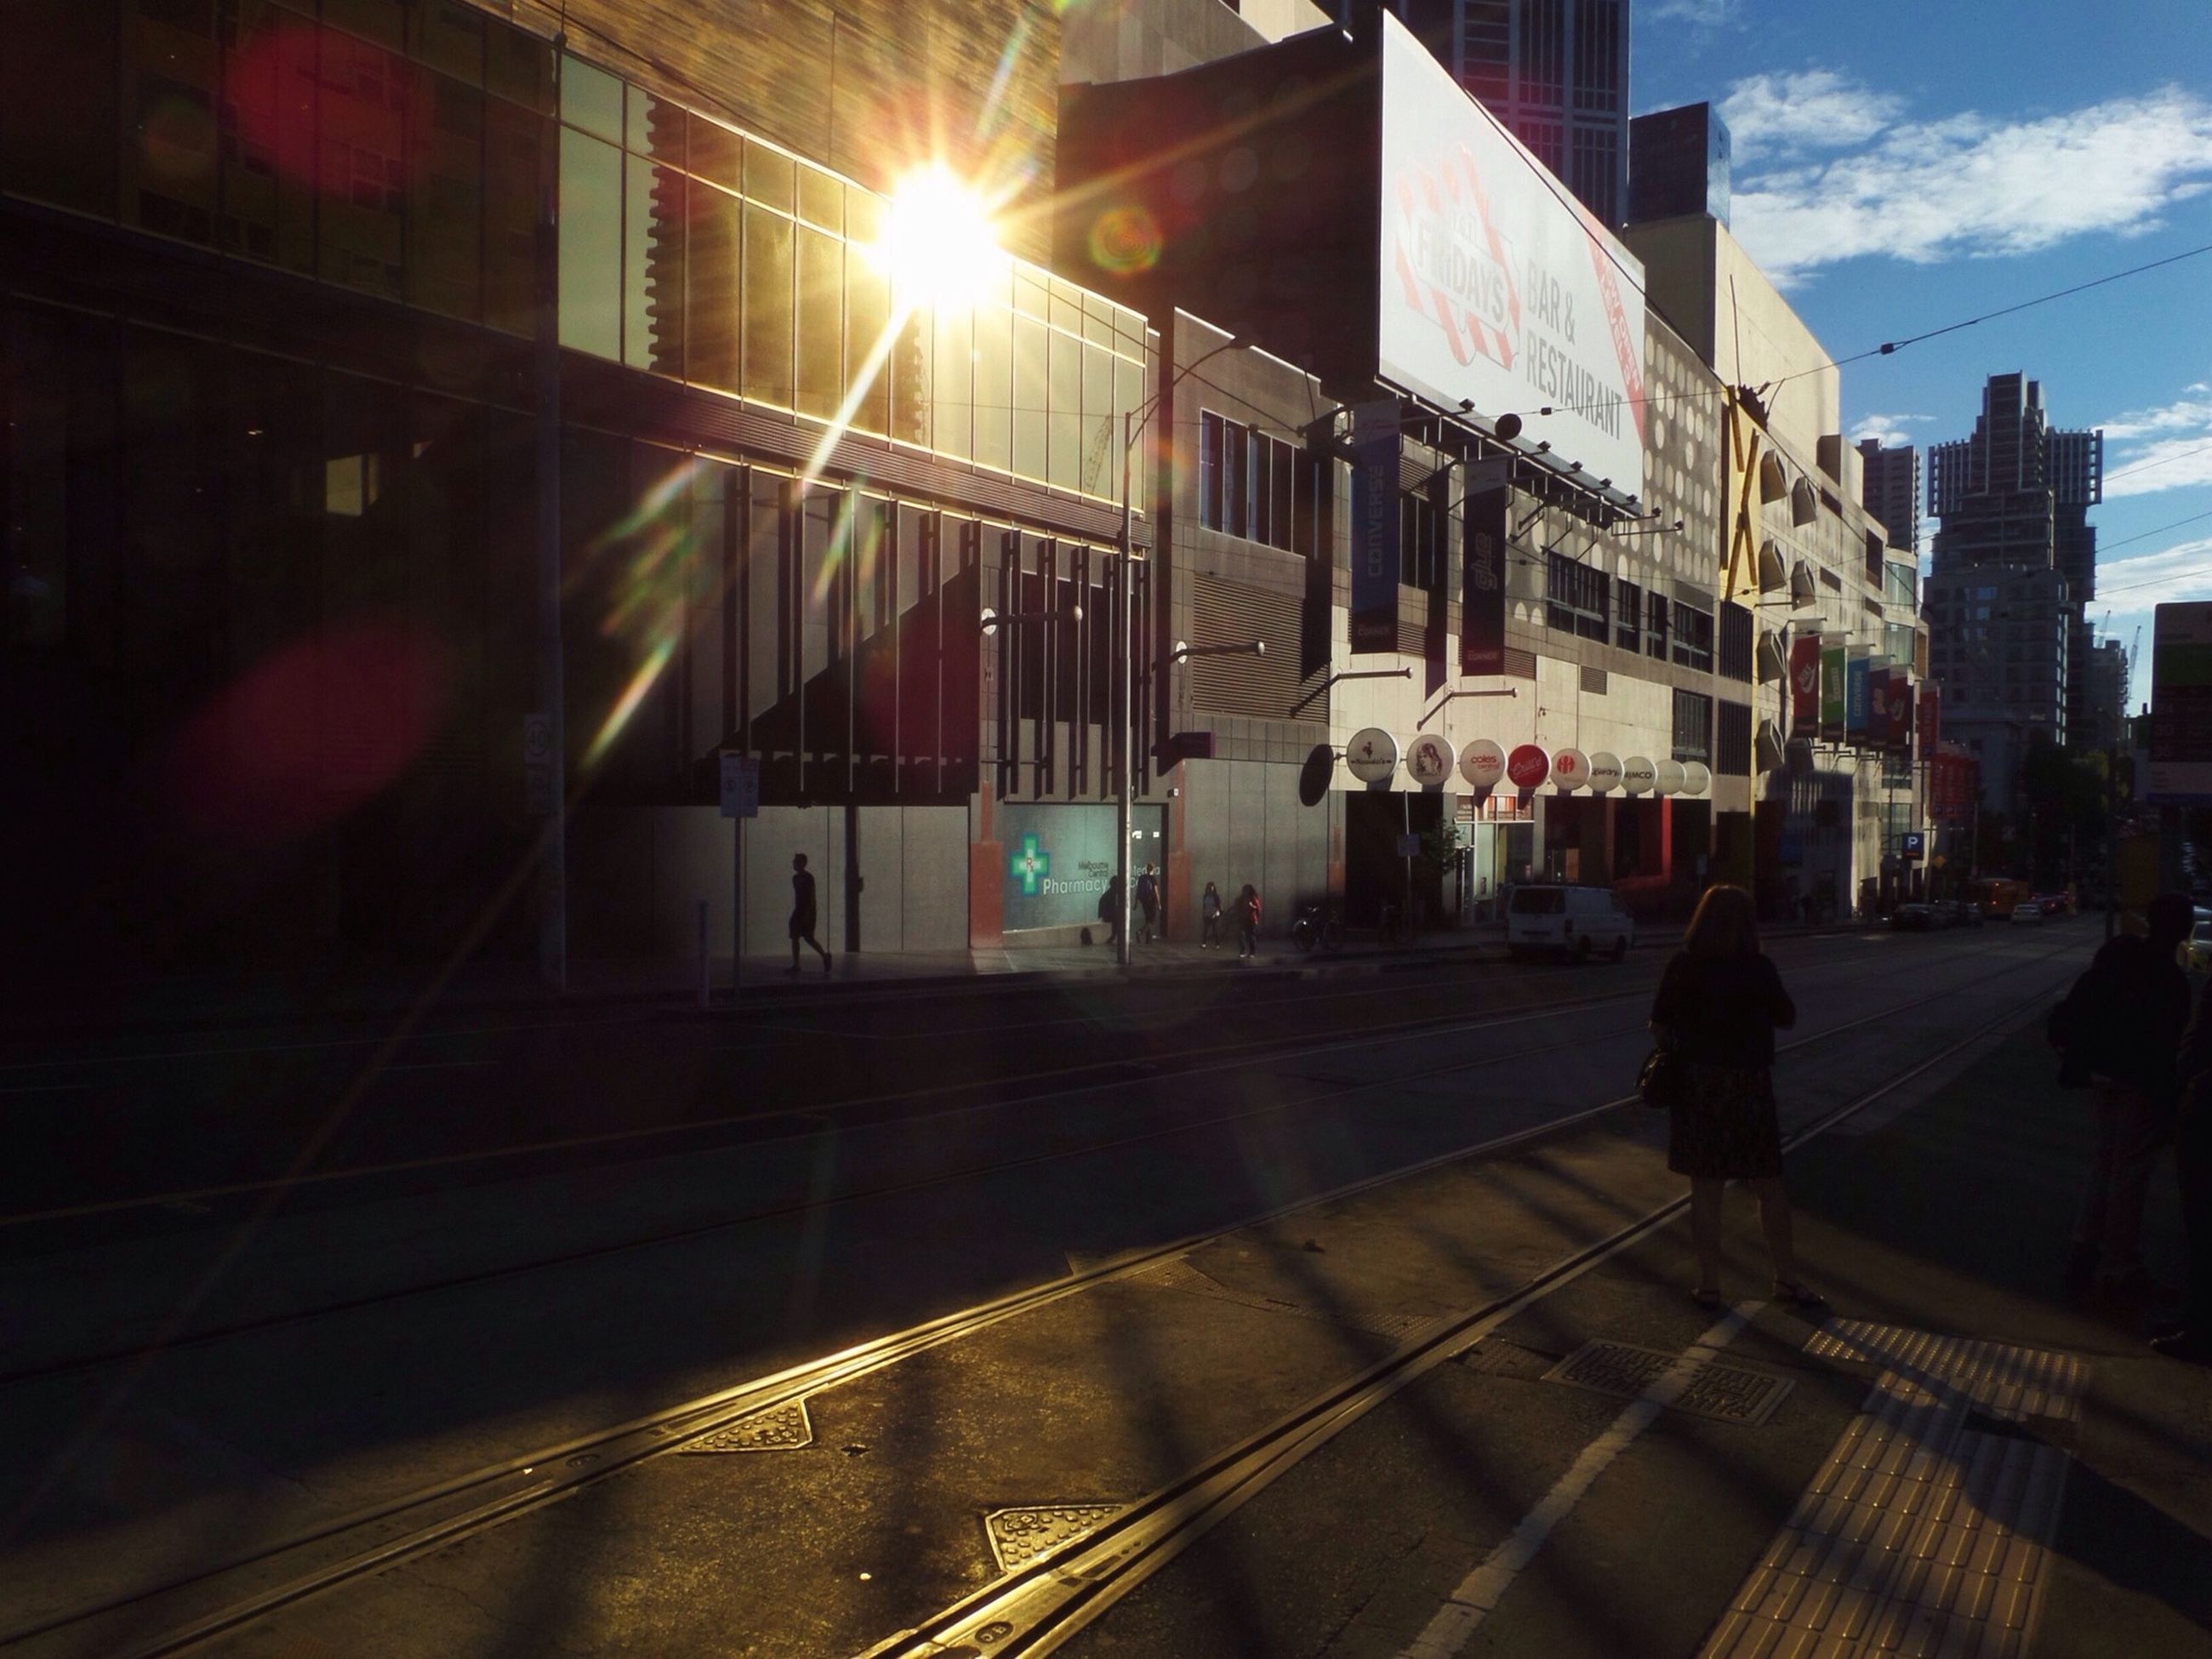 building exterior, architecture, built structure, city, city life, street, transportation, silhouette, walking, men, sunlight, building, lifestyles, illuminated, sky, full length, city street, road